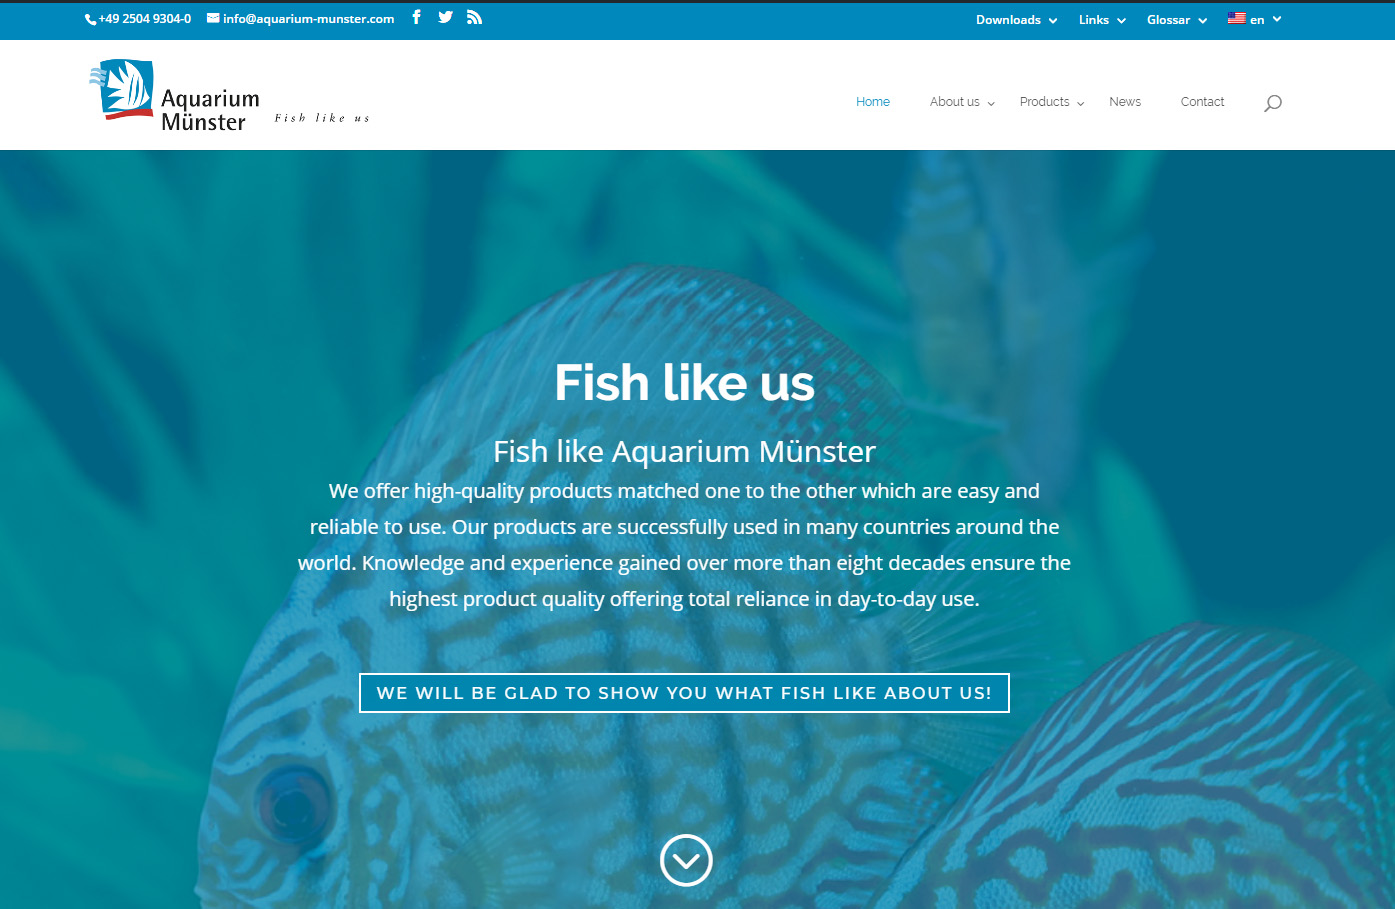 The newly-renovated www.aquarium-munster.com